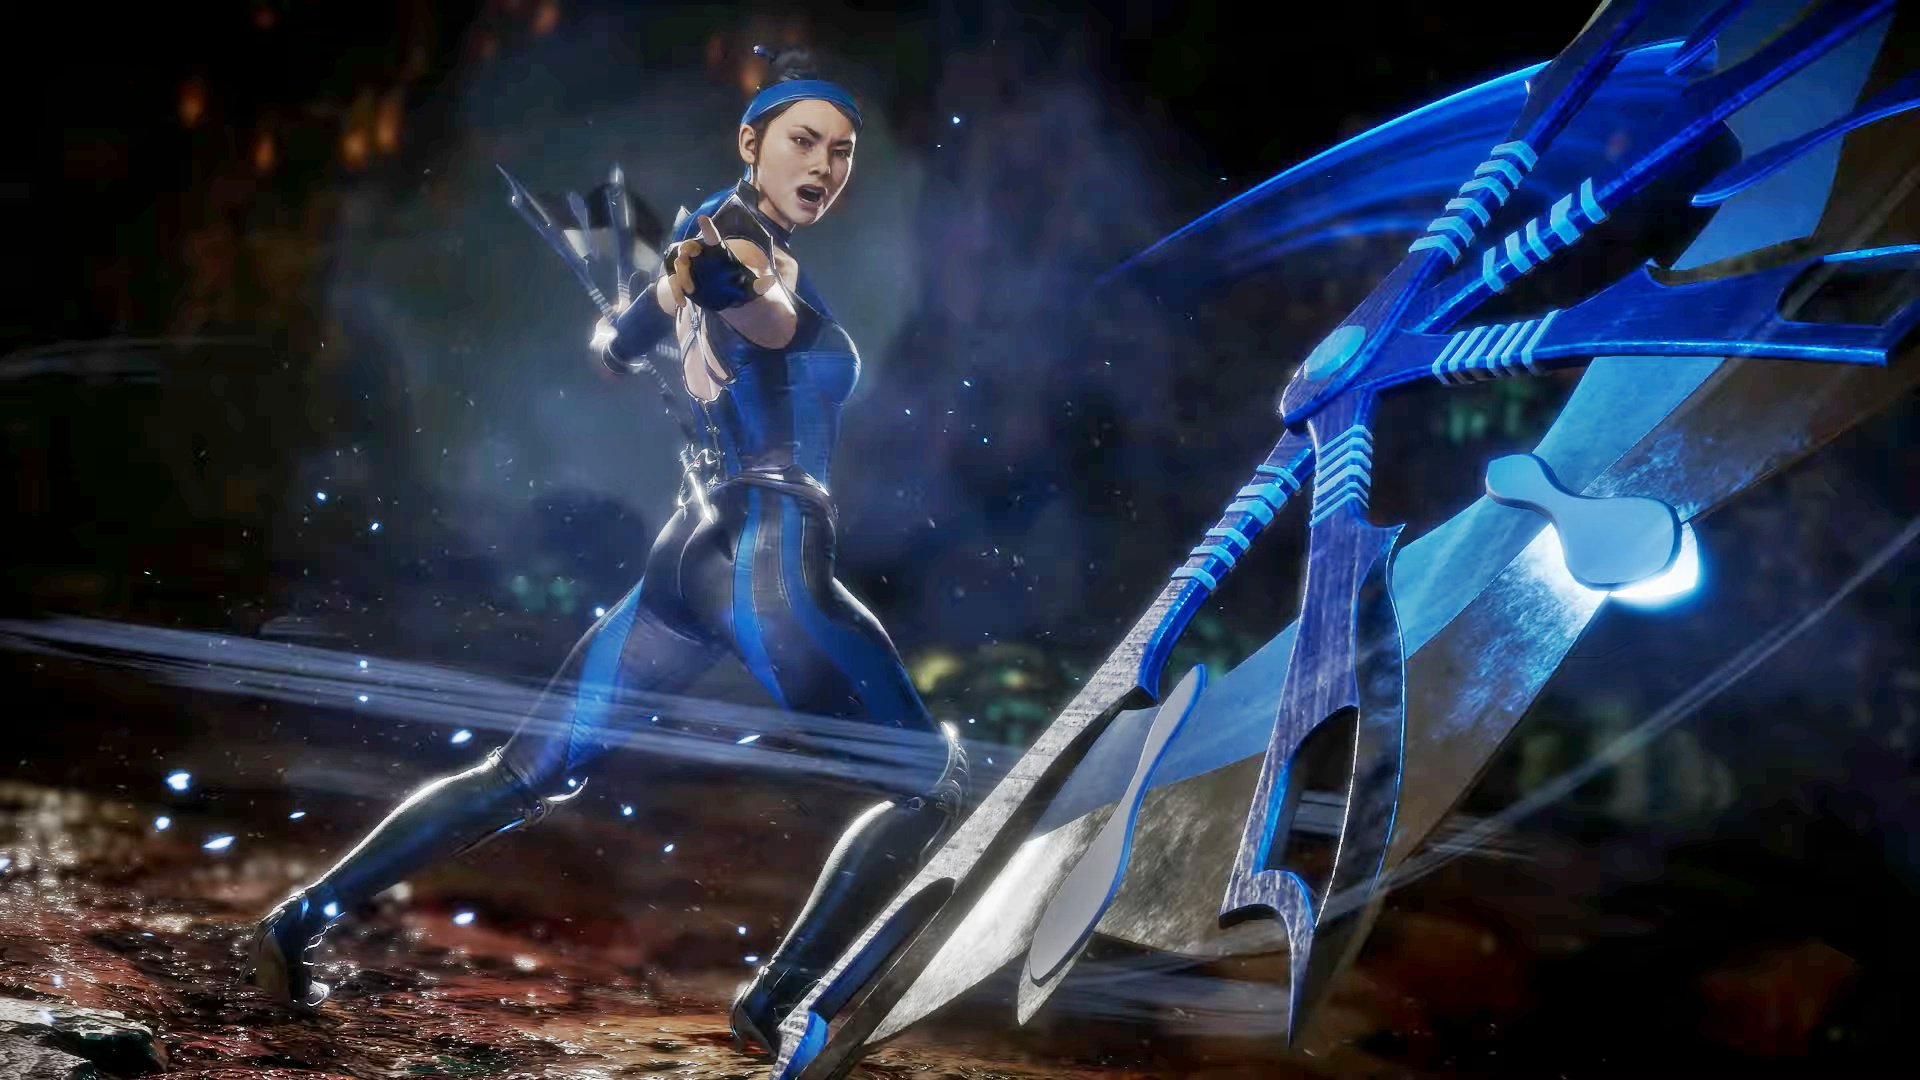 Johnny Cage may take the cake for best Mortal Kombat 11 fatalities